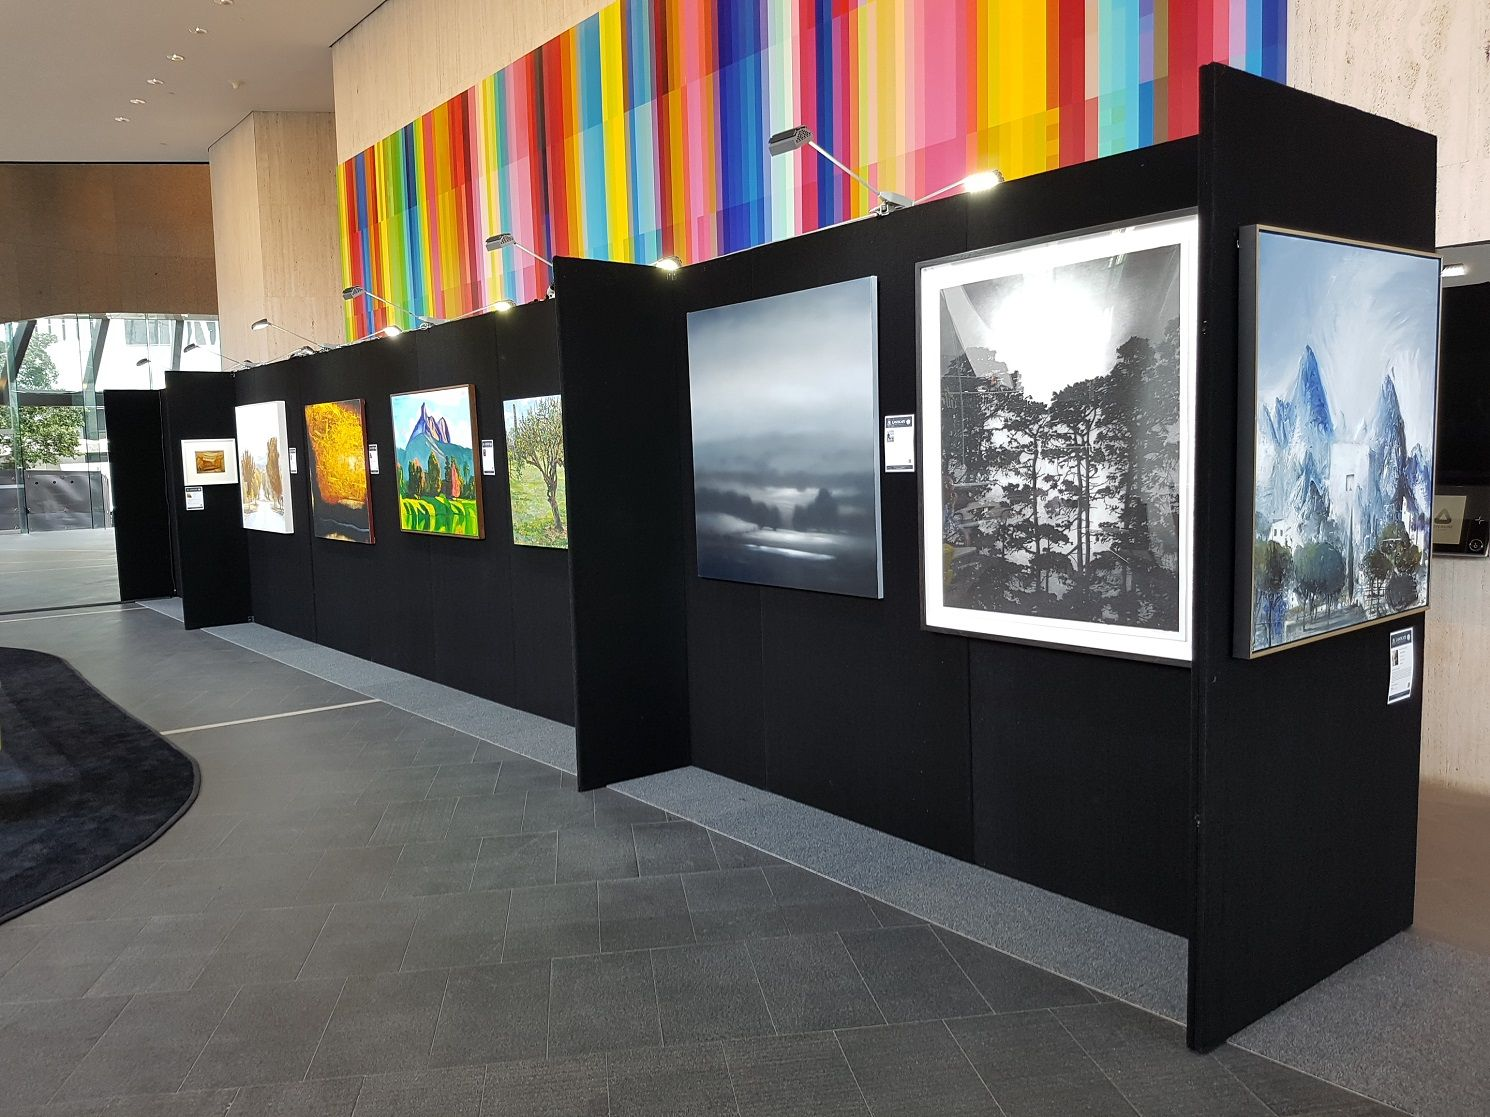 Exhibition Display Boards : Image result for art exhibition display boards art displays